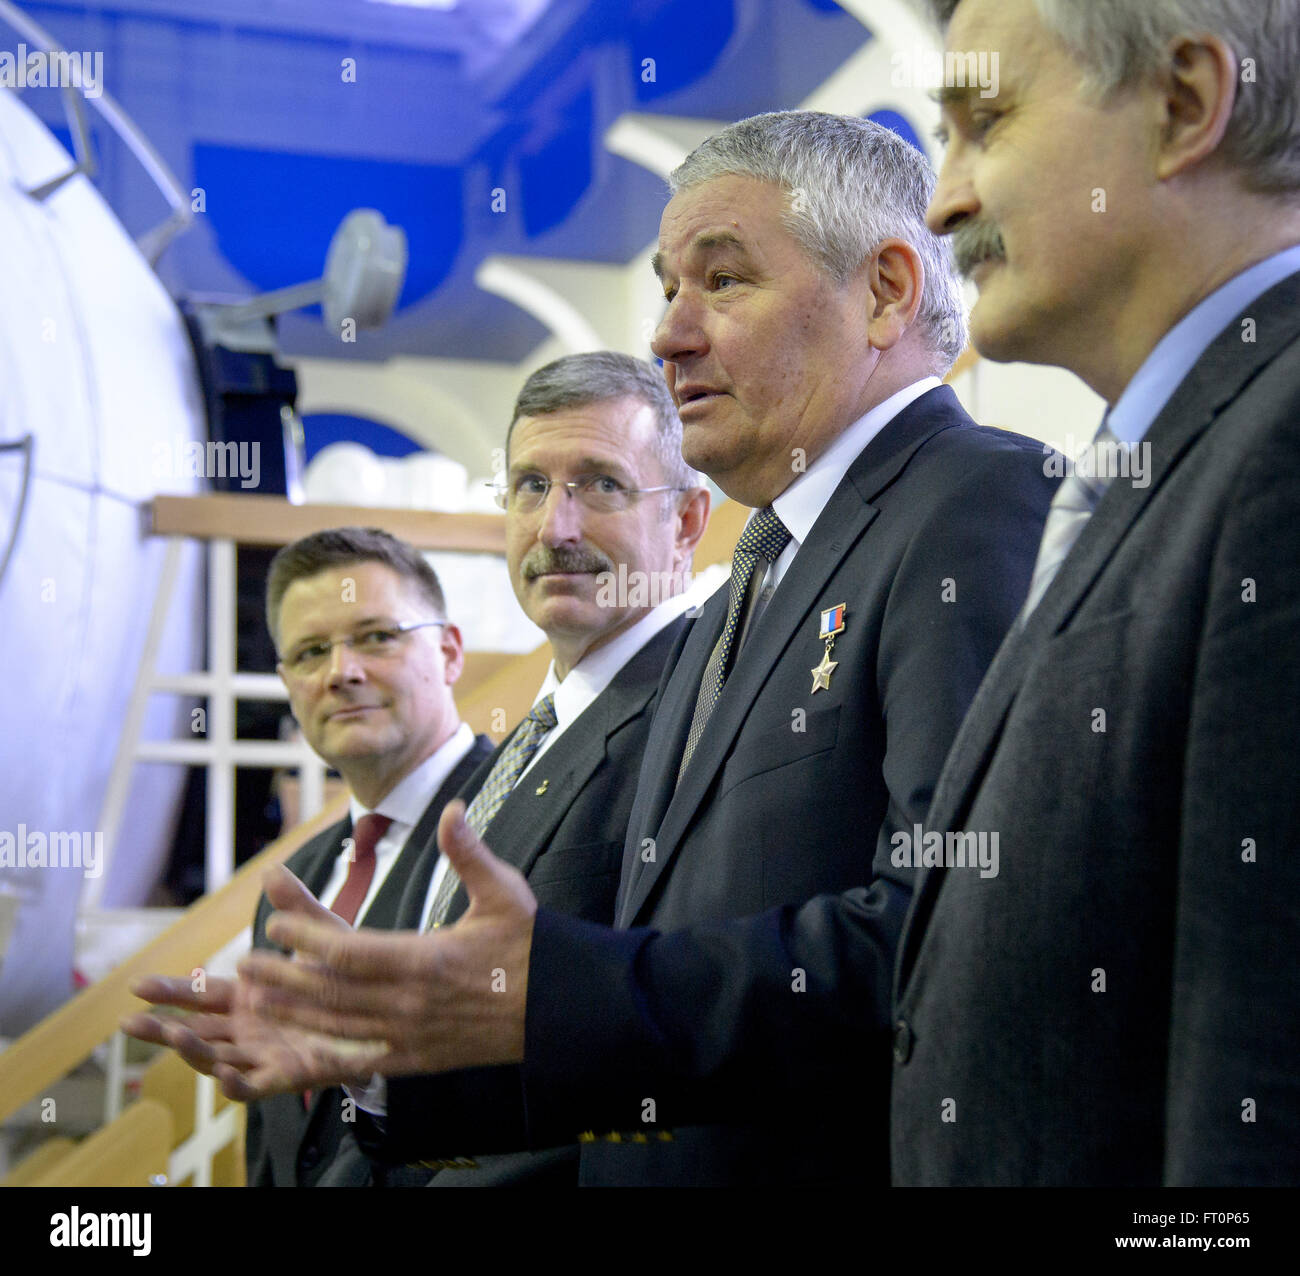 Gagarin Cosmonaut Training Center (GCTC) Chief Cosmonaut, and Final Exam Commission Co-Chair Valery Korzun, 3rd - Stock Image